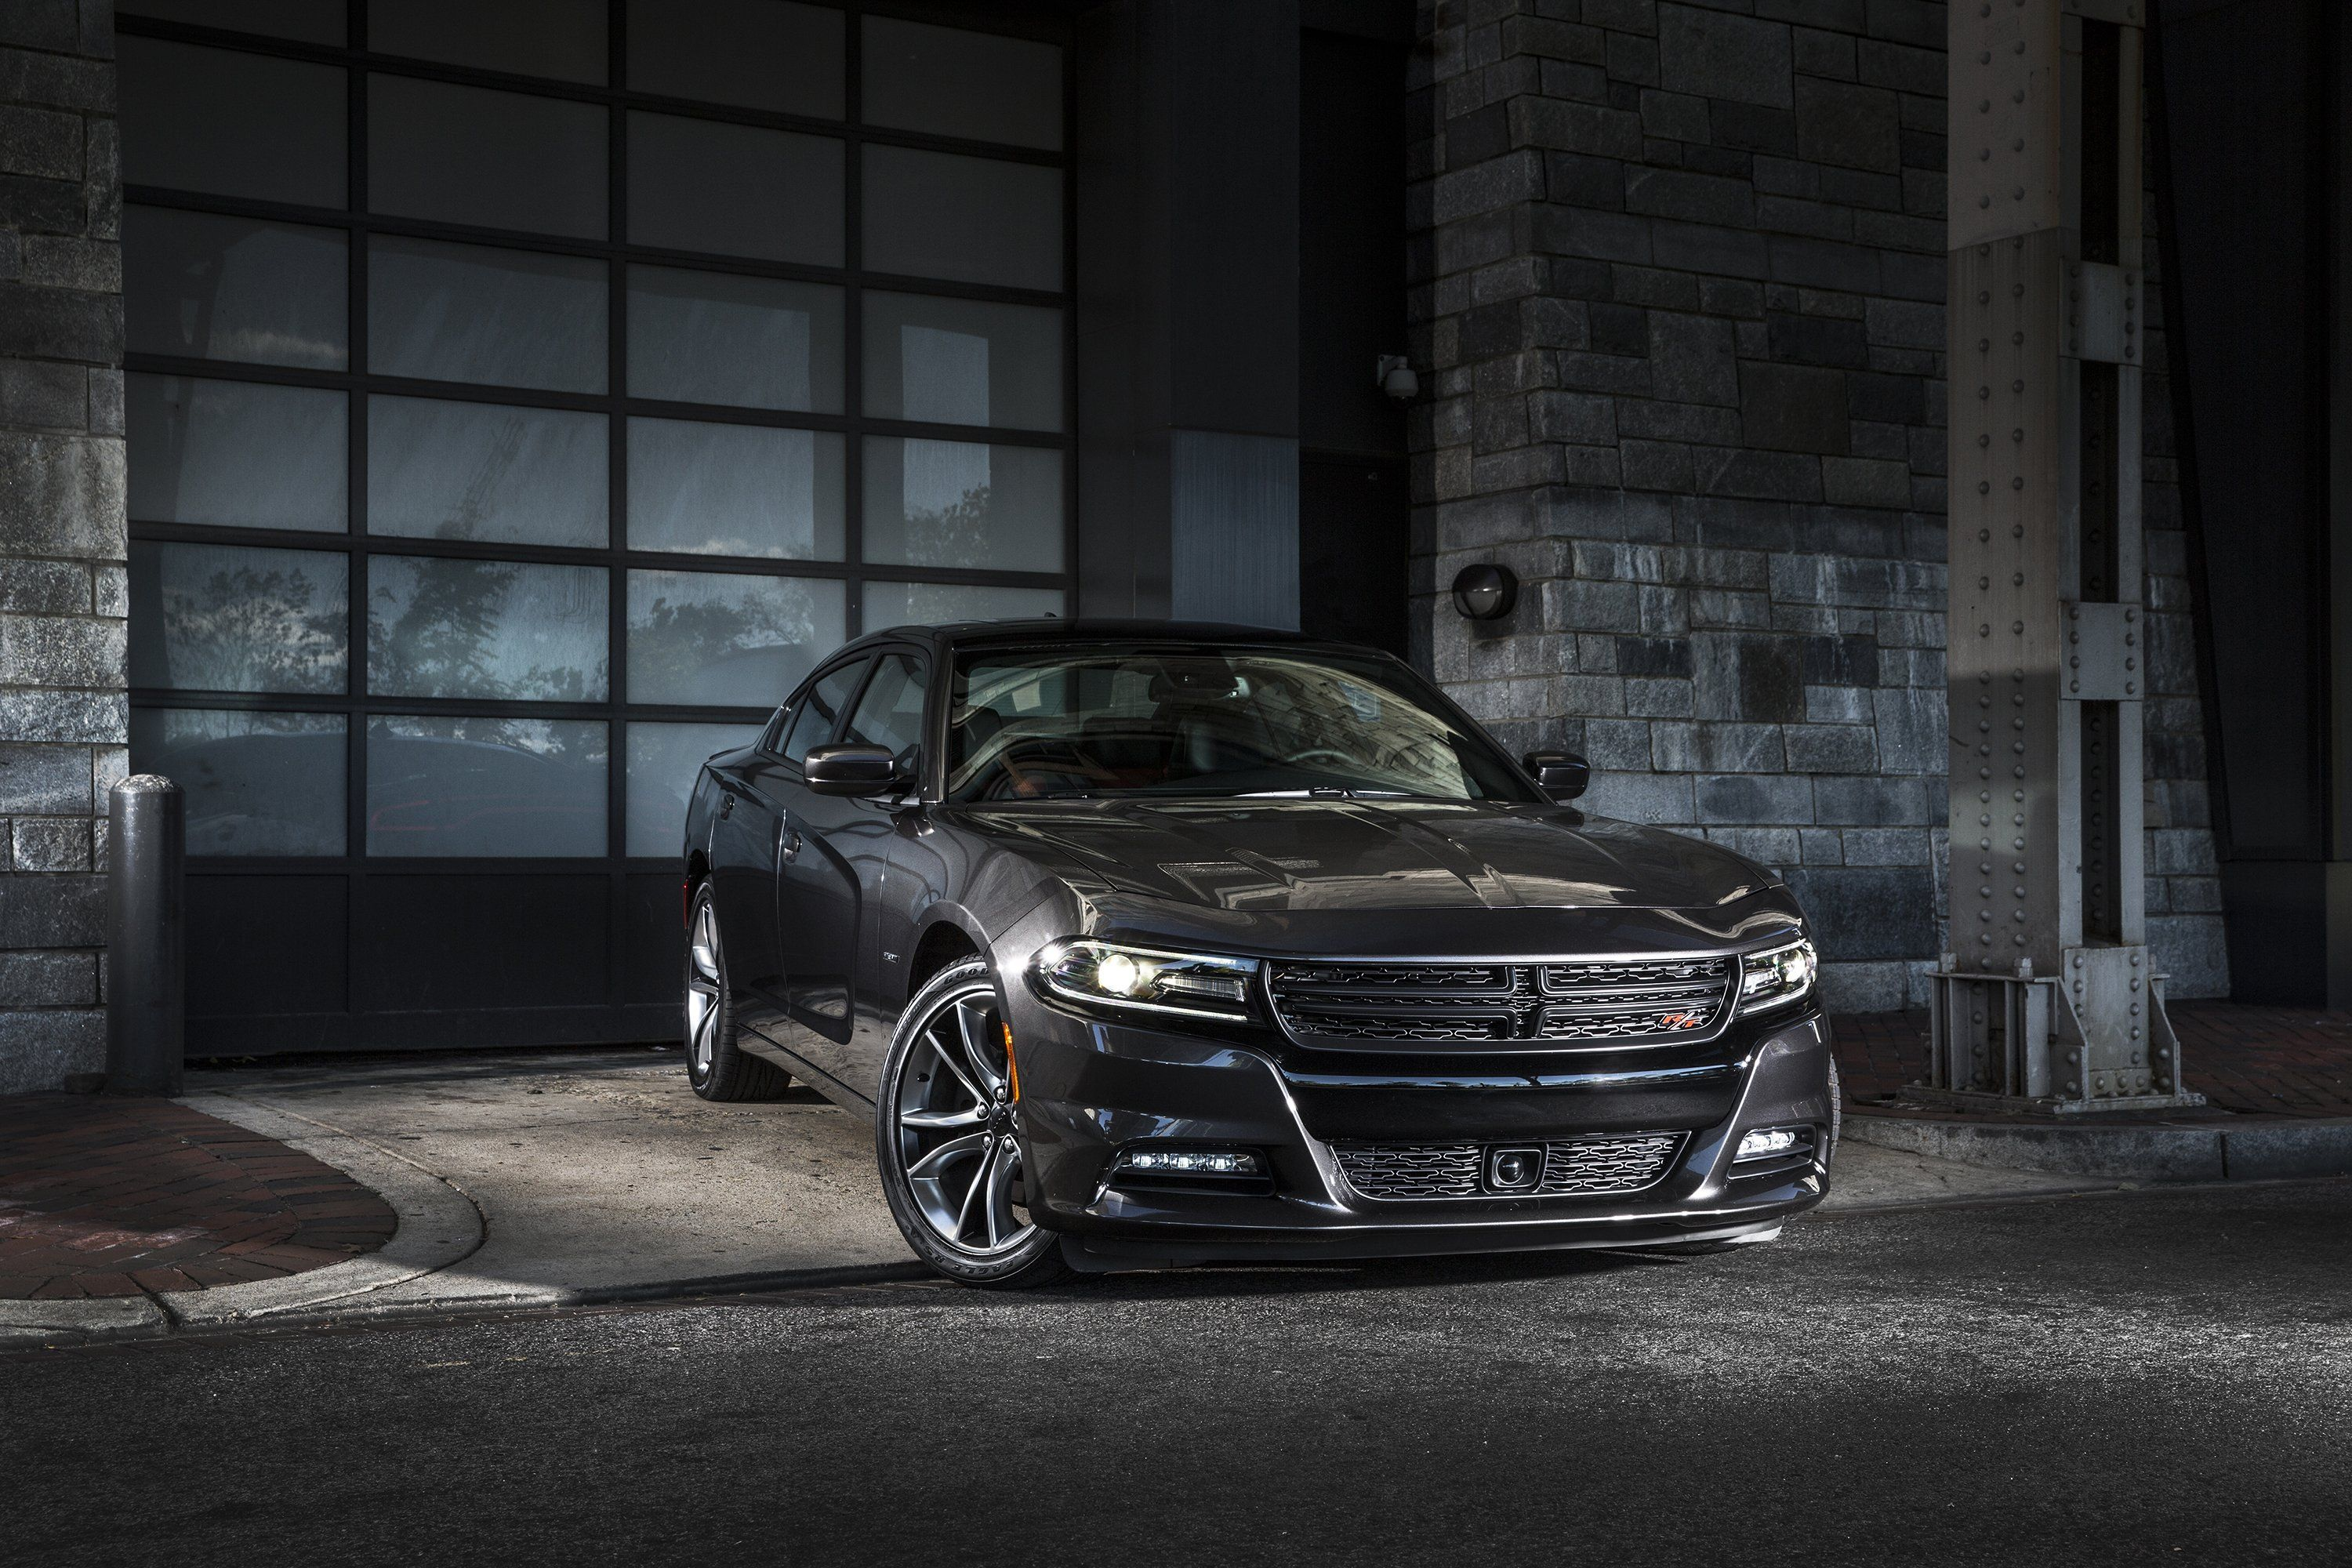 Dodge Charger Wallpaper In 2019 Dodge Charger Dodge